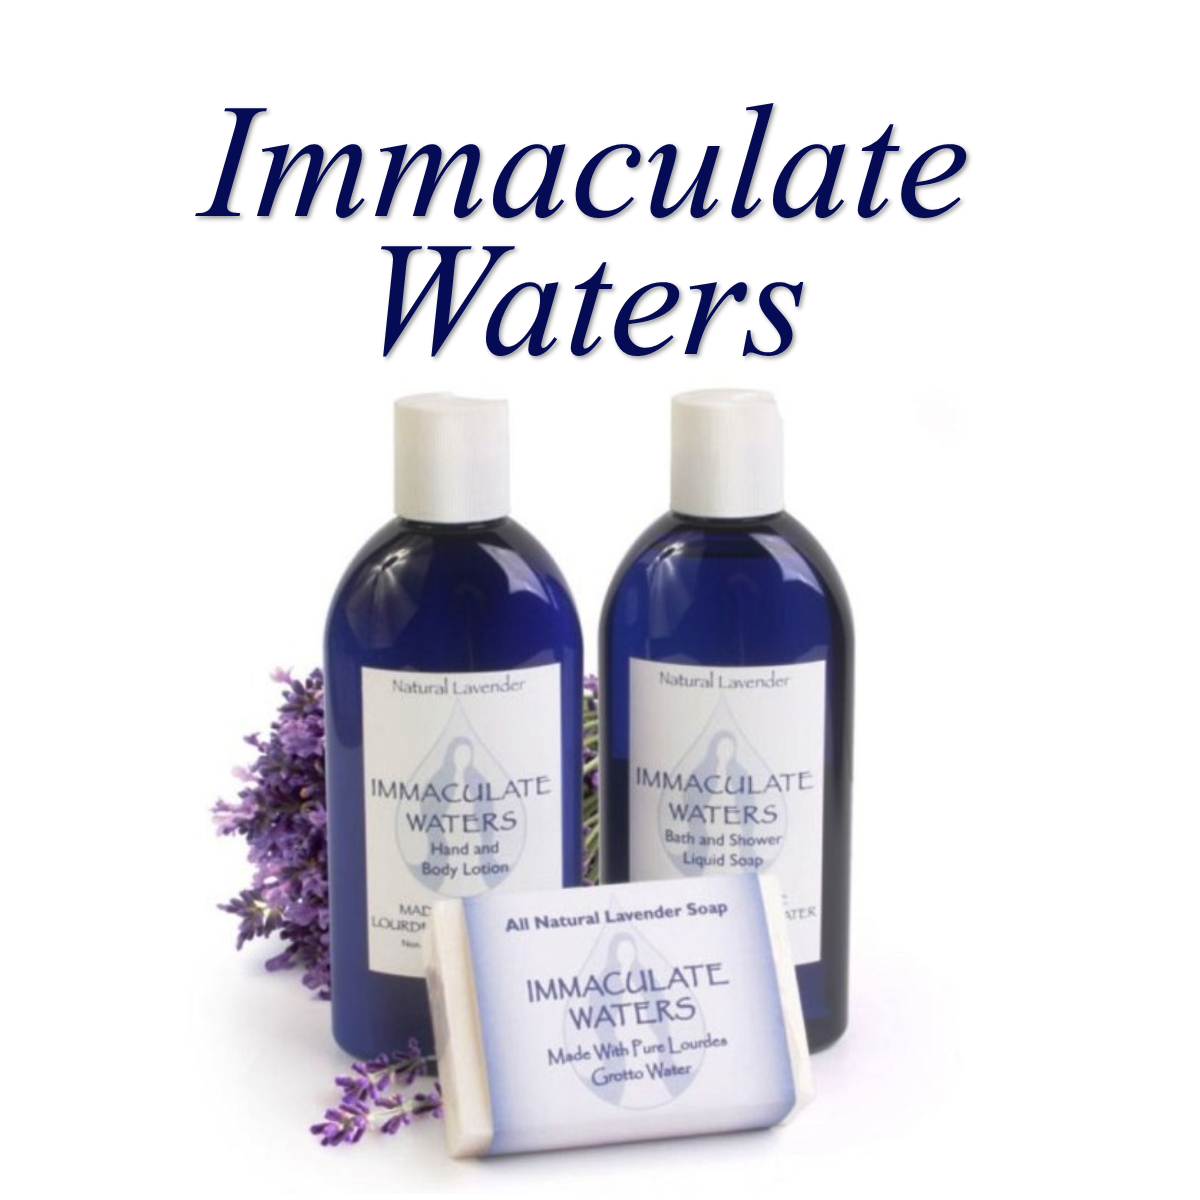 Immaculate Waters